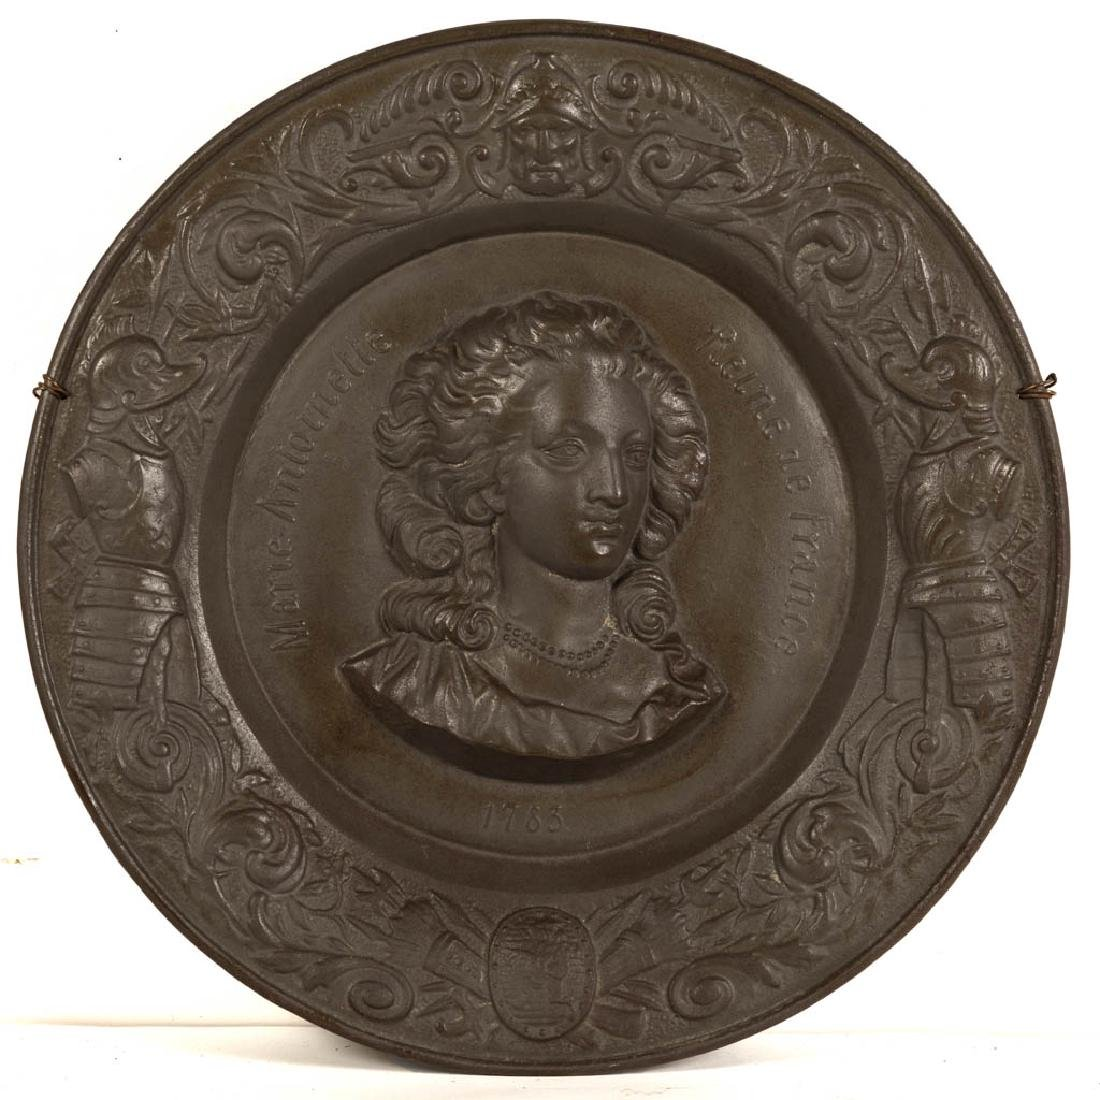 CONTINENTAL CAST-IRON WALL PLAQUE OF MARIE ANTOINETTE